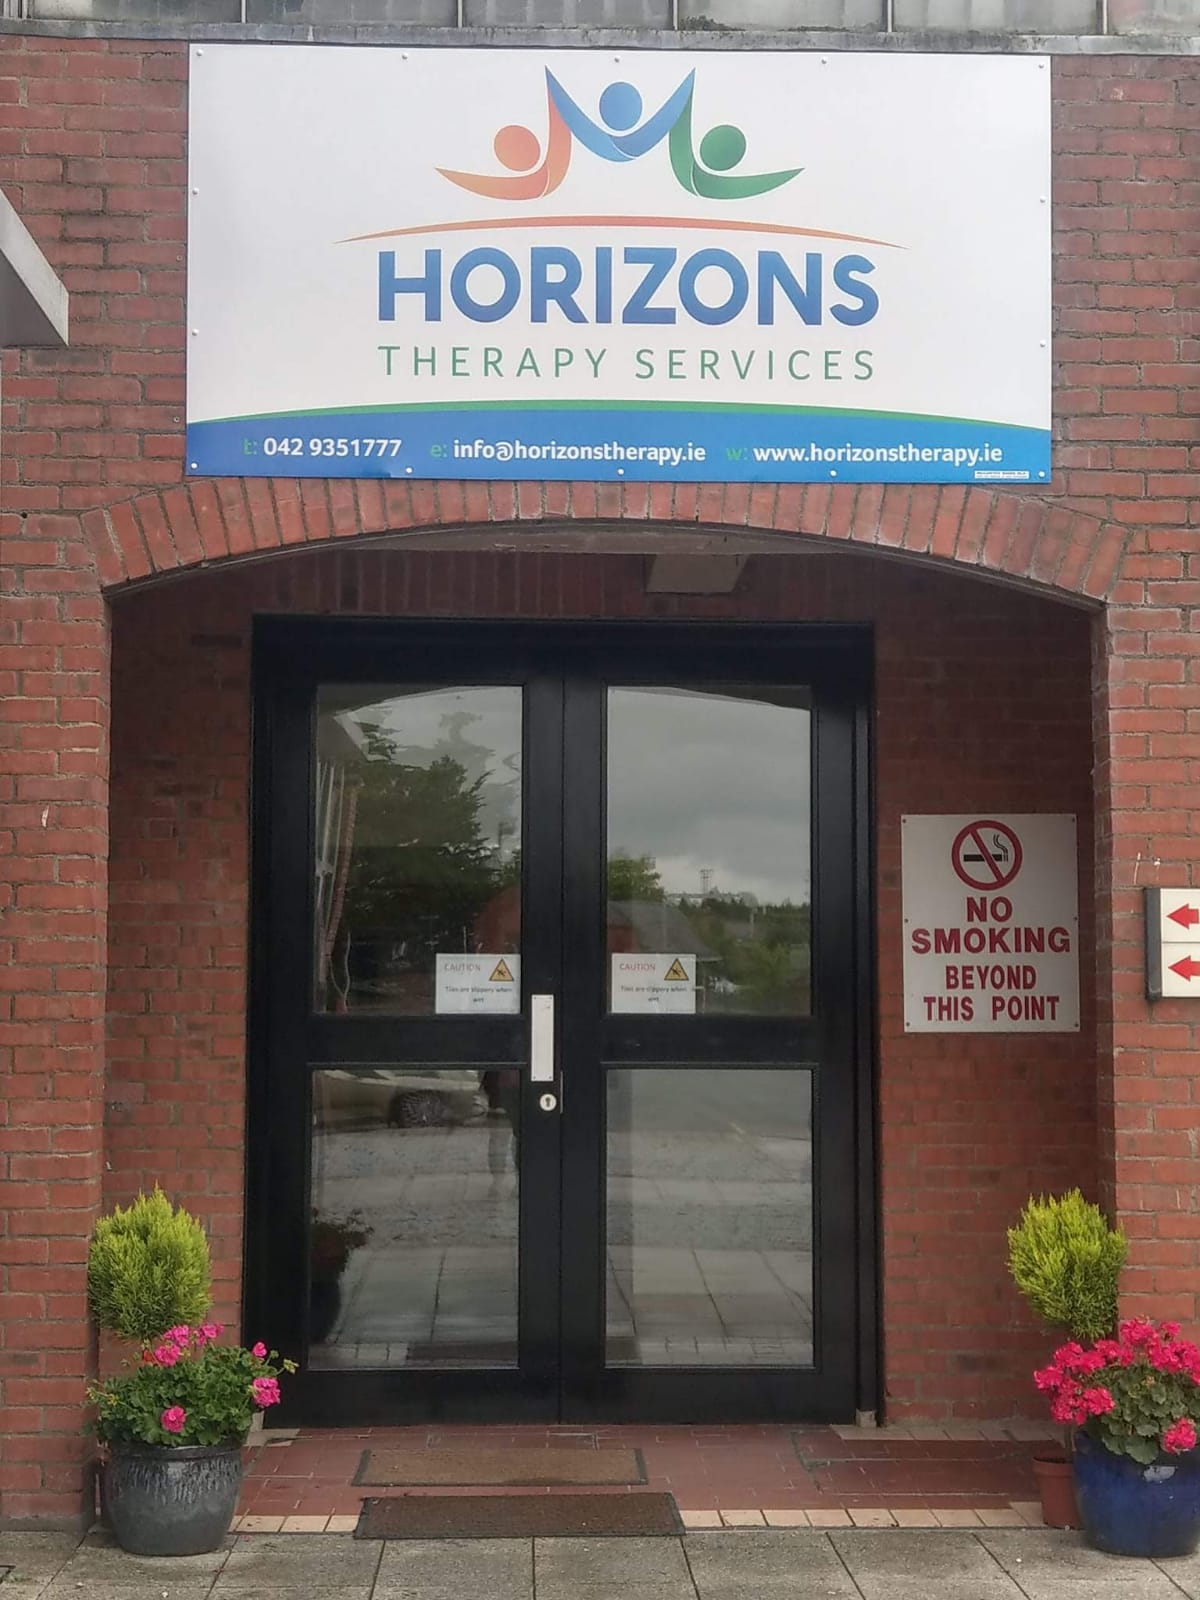 Horizons therapy enntrance